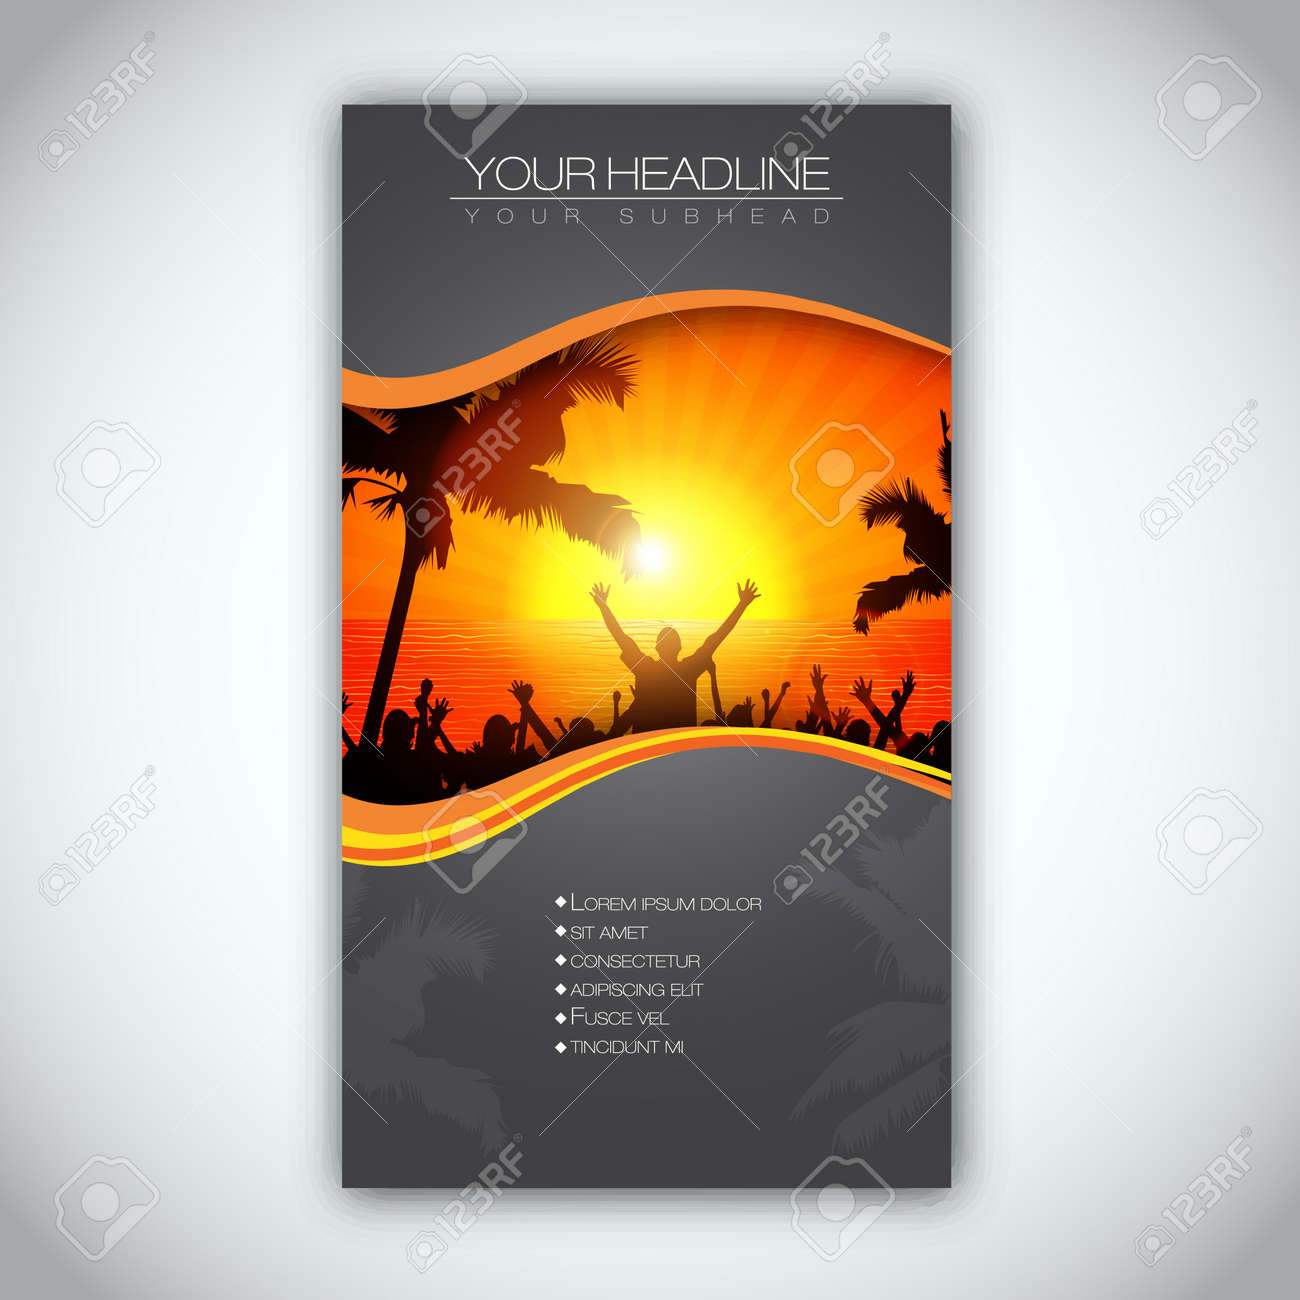 summer time brochure template royalty cliparts vectors and summer time brochure template stock vector 14424202